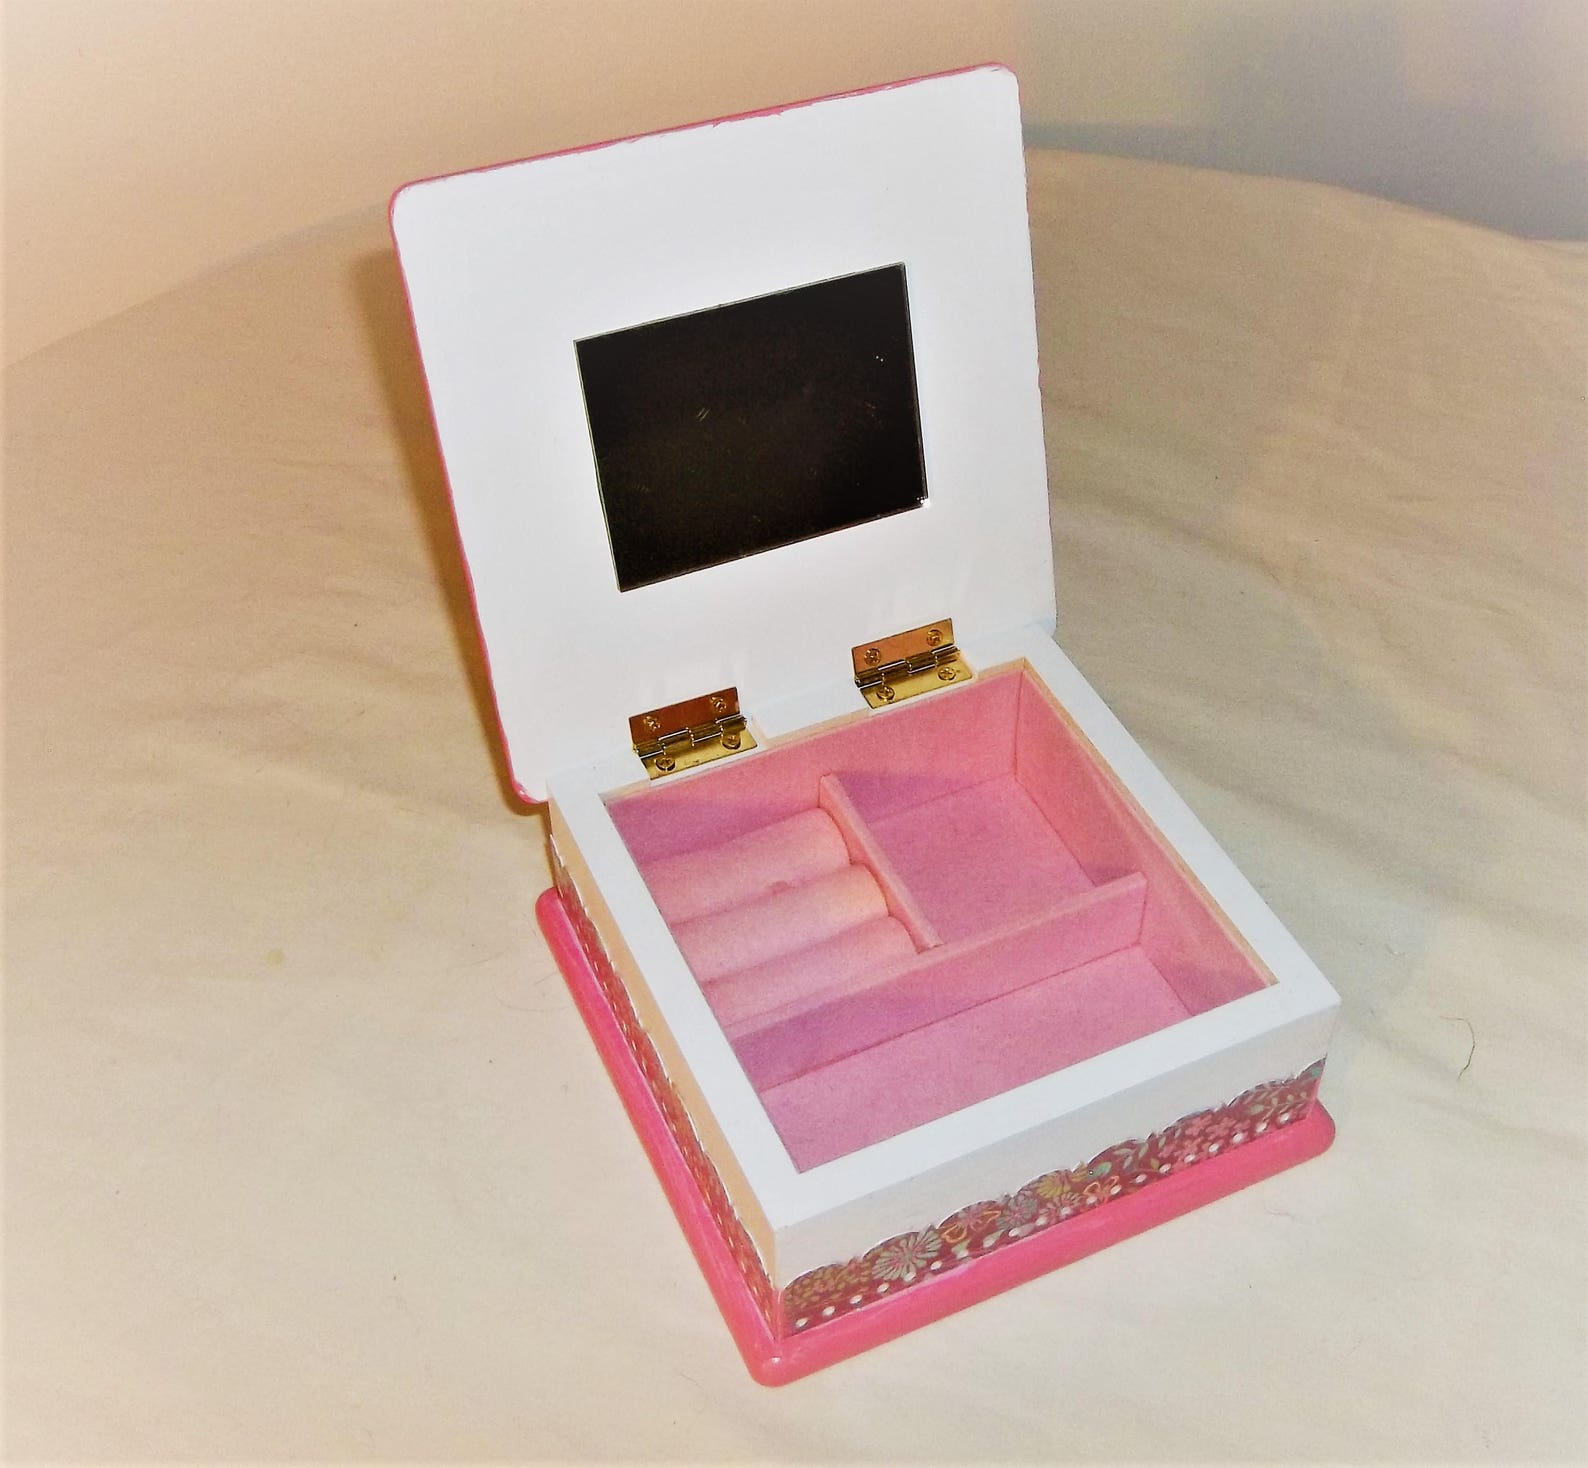 upcycled pink & white child's wood jewelry box - little girl / hearts / flowers / ballet shoes